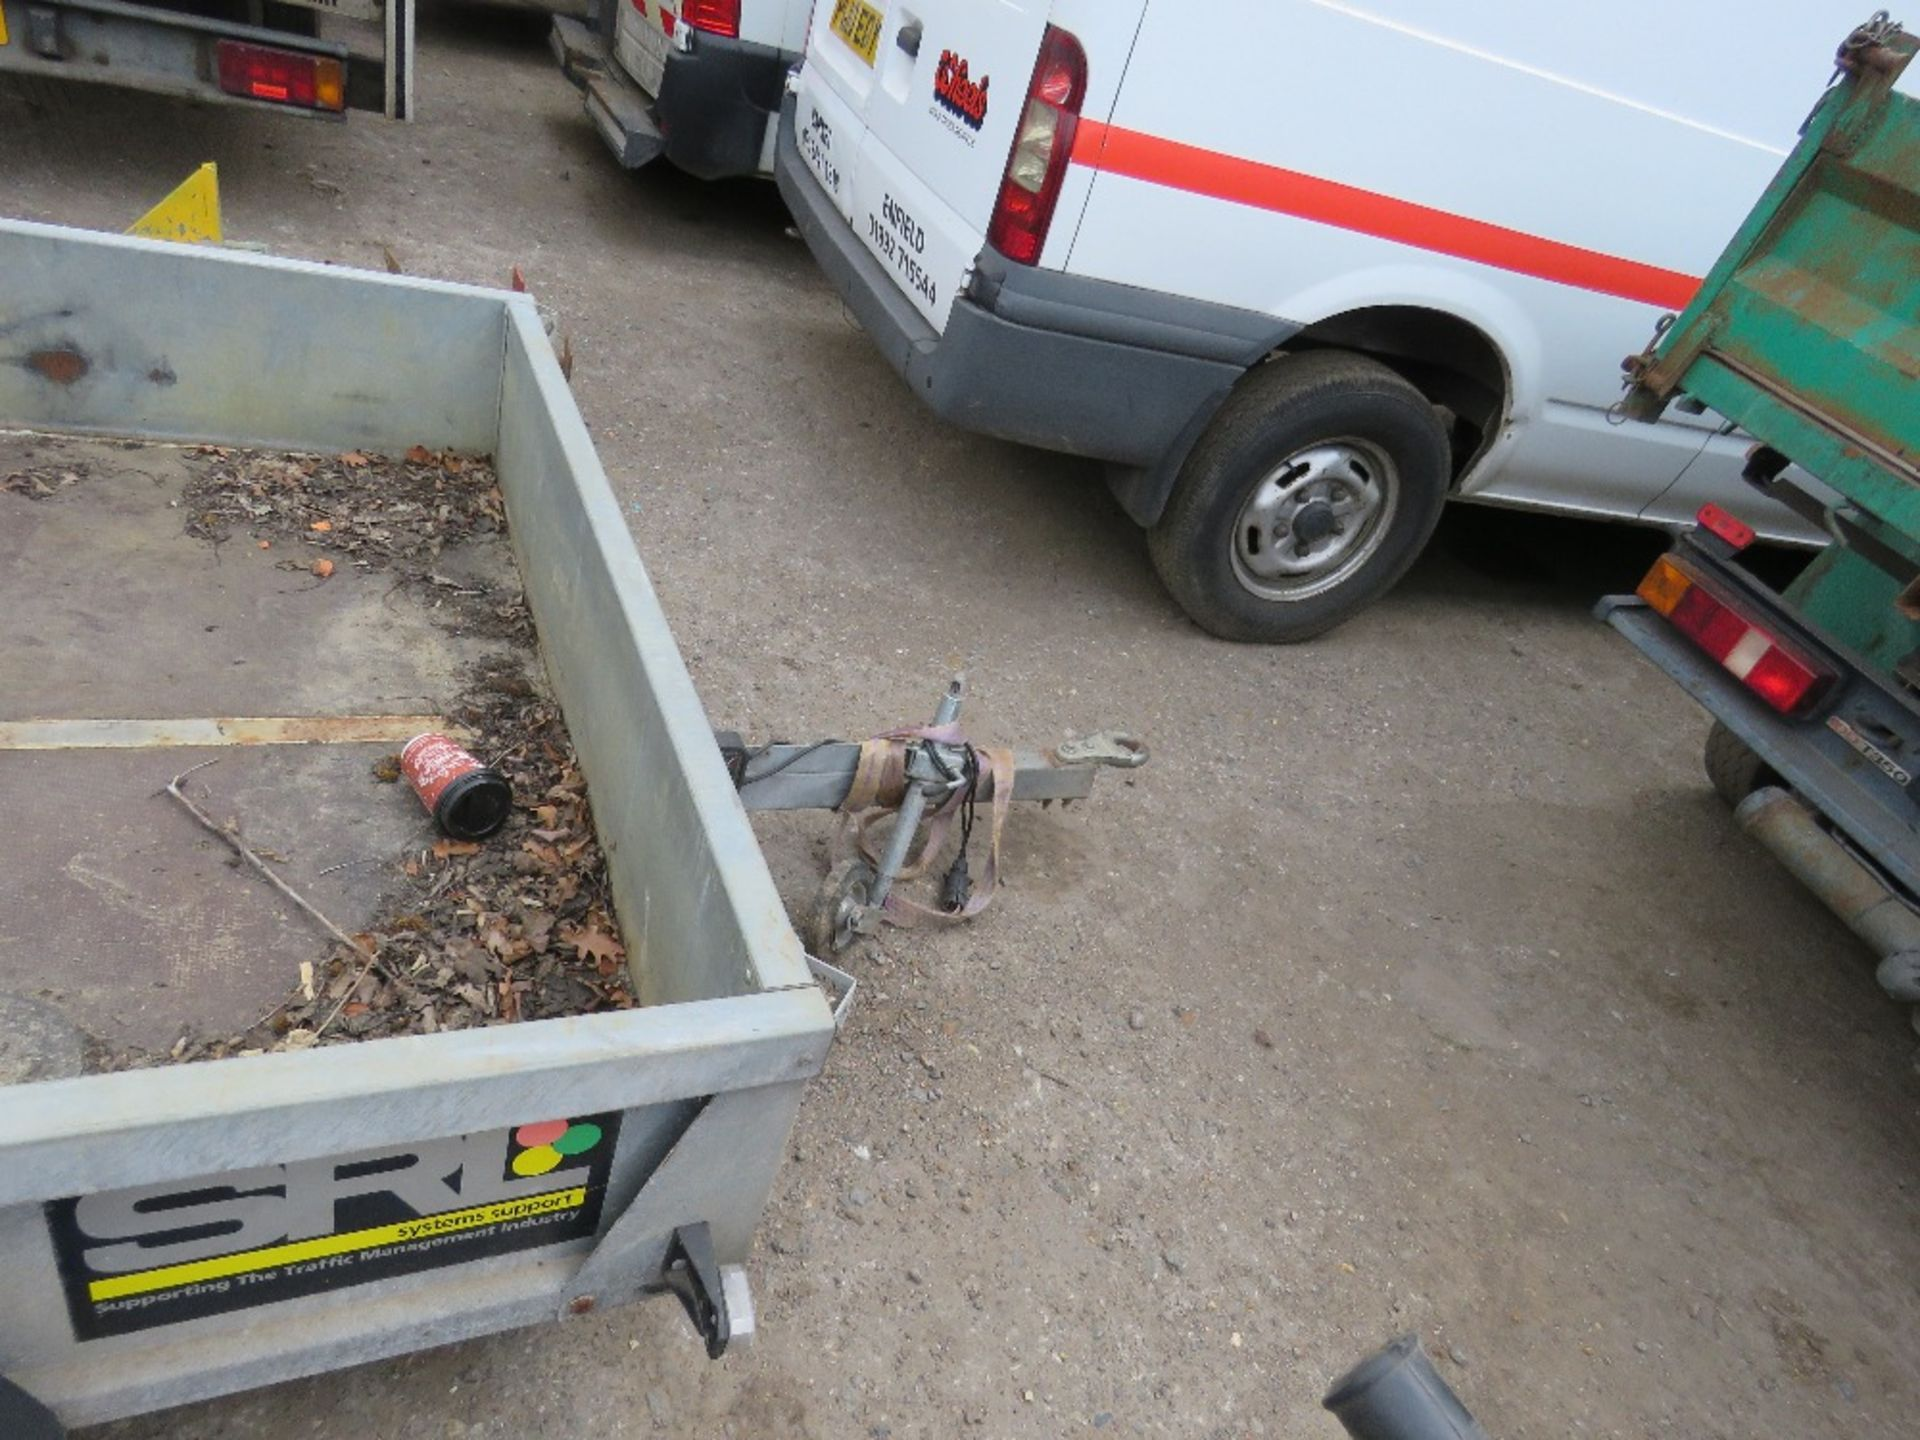 Lot 61 - SMALL SIZED PORTABLE TRAFFIC LIGHT TRAILER